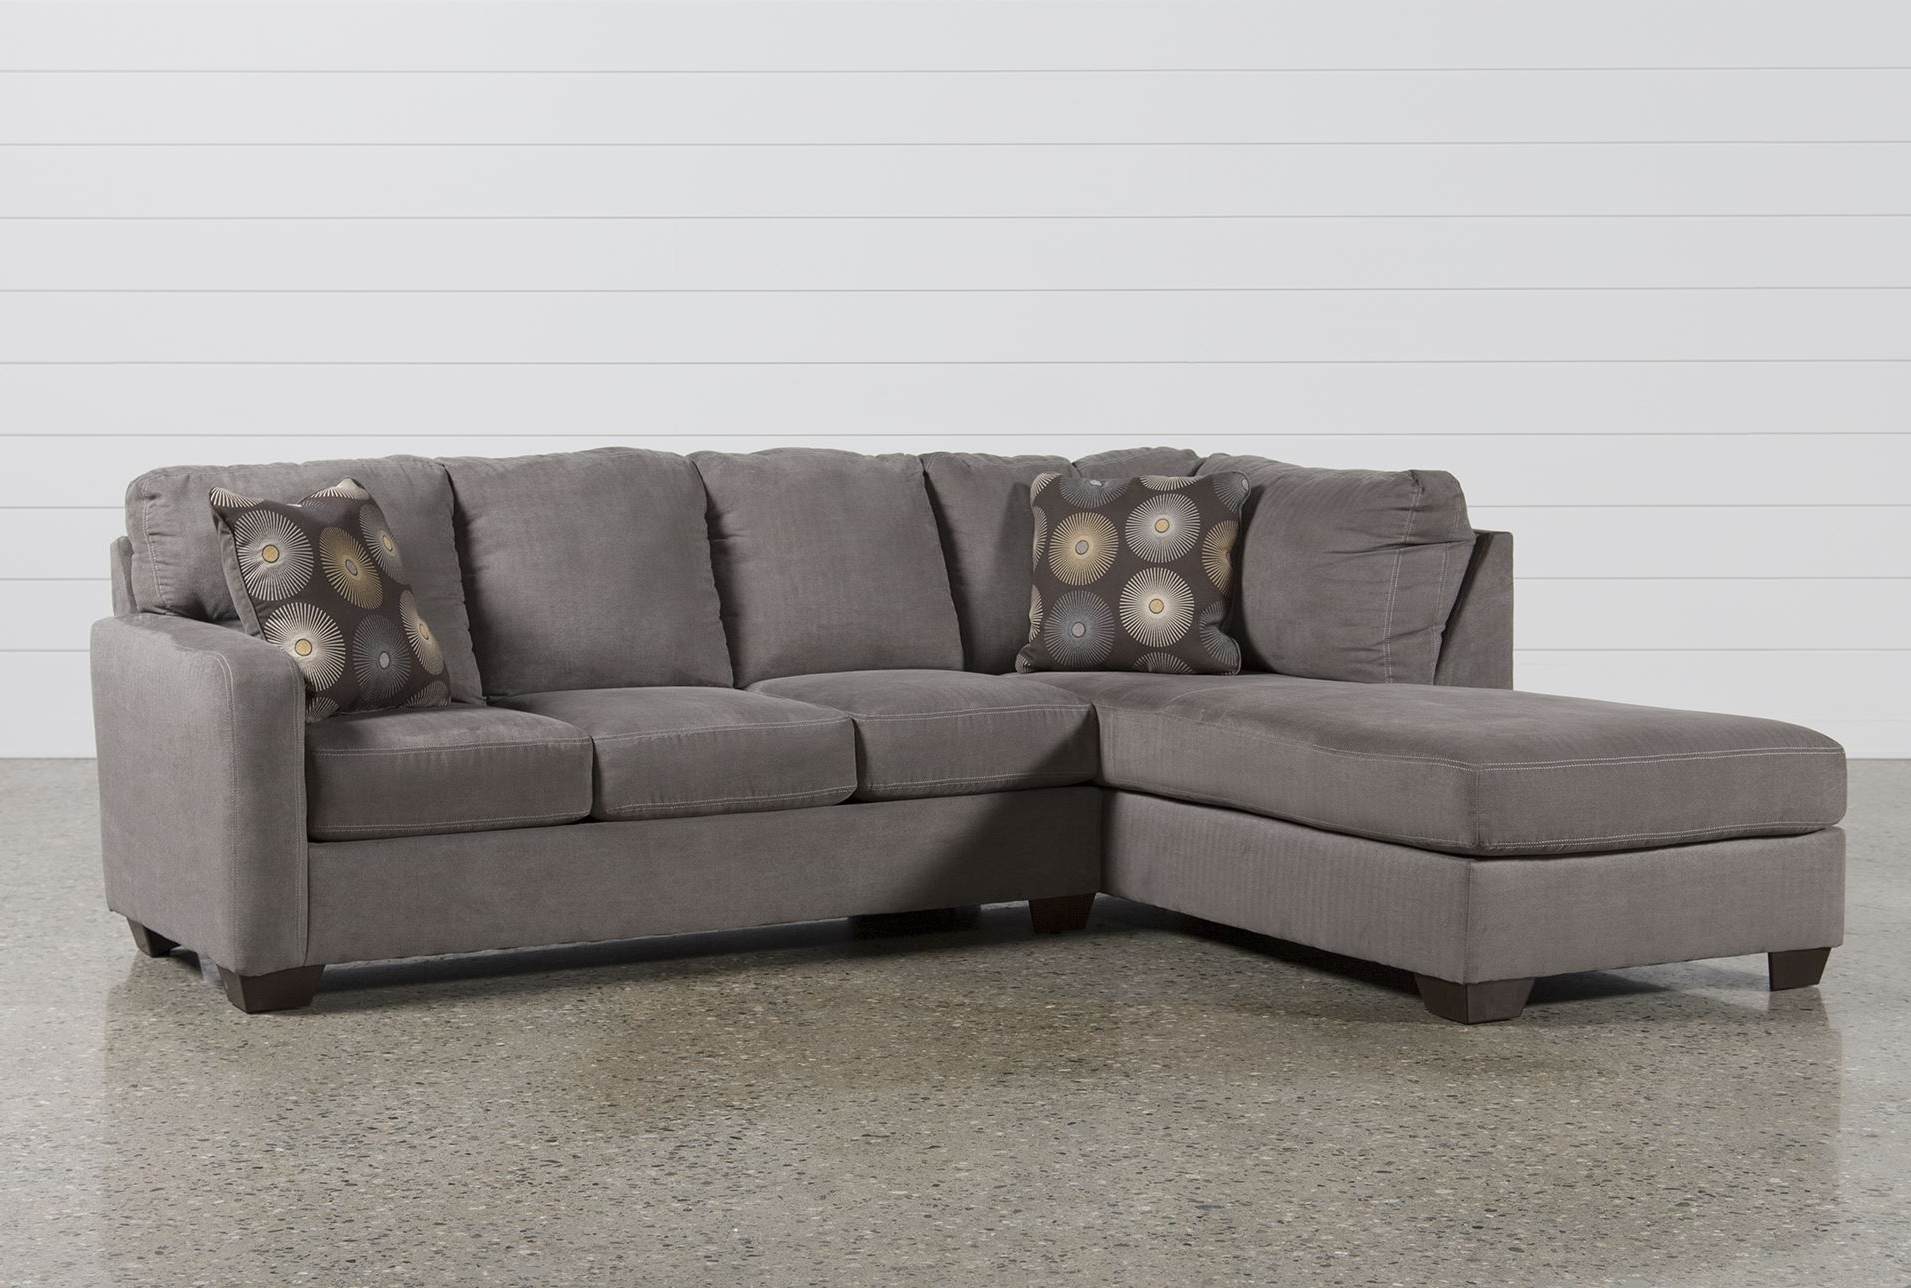 Gray Sectionals With Chaise Pertaining To Popular Sofa ~ Luxury Leather Sofa With Chaise Lounge Cute Small Sectional (View 2 of 15)